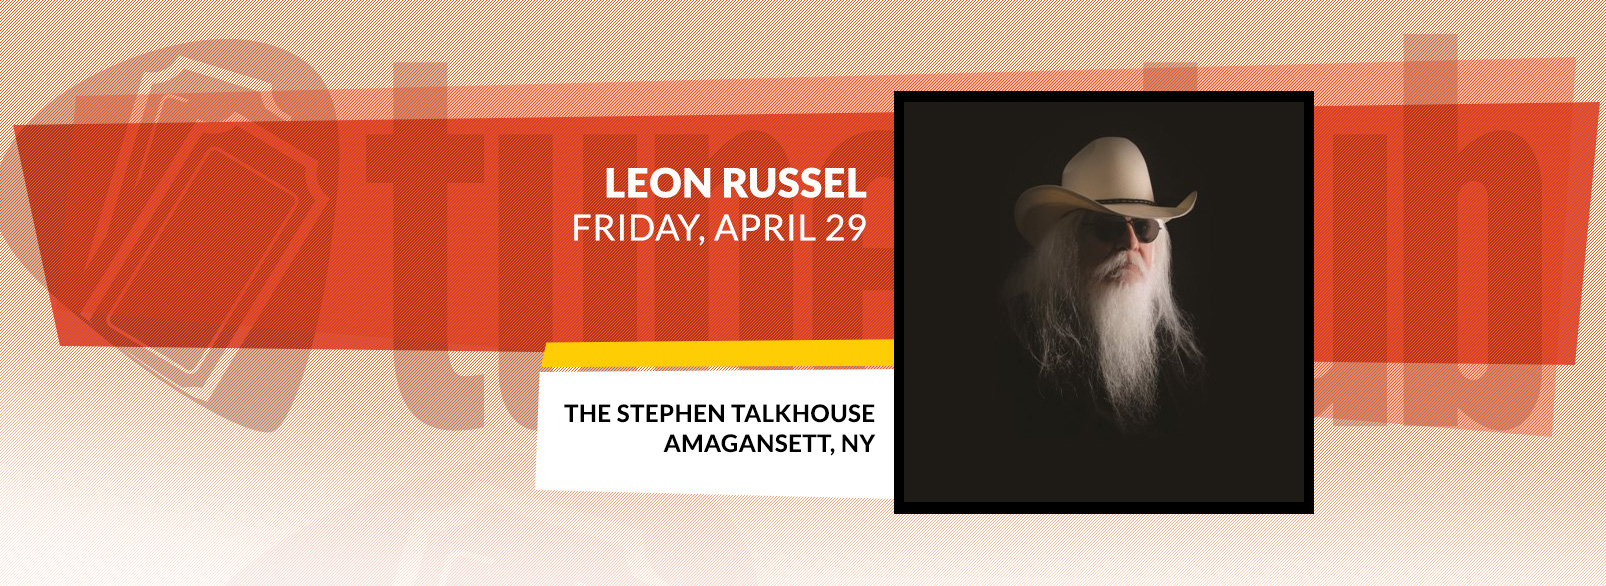 Leon Russell @ The Stephen Talkhouse